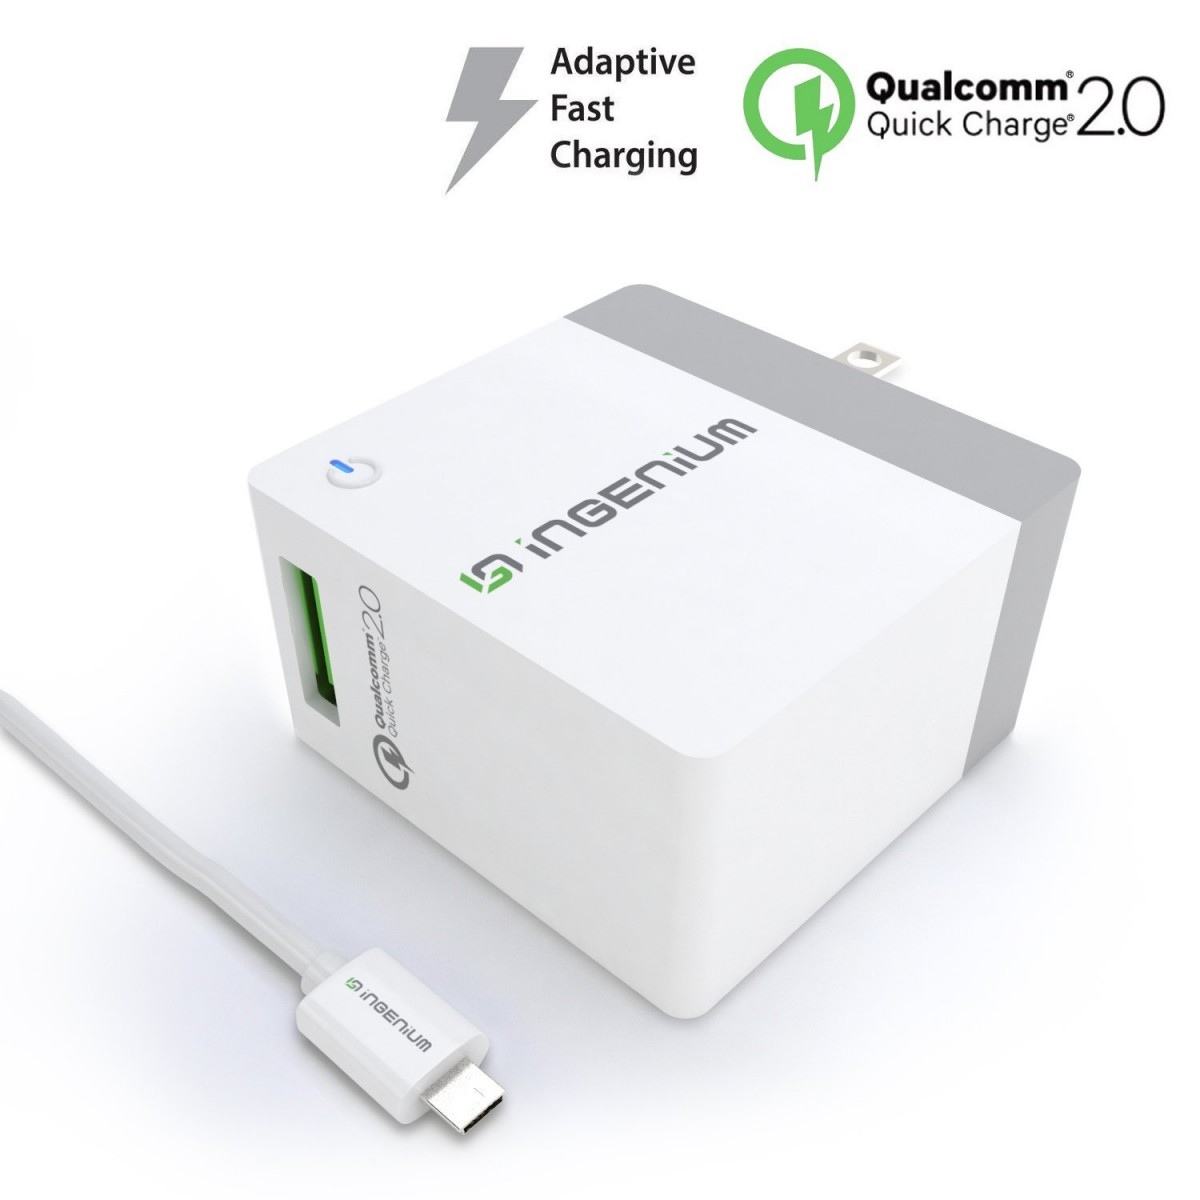 Ingenium [NEXT-GEN Quick Charge 2 0] USB Adaptive Fast Wall Charger with  Foldable Plug for Android, Samsung Galaxy S6/S7/EDGE, NOTE 4/5, LG G4 V10,